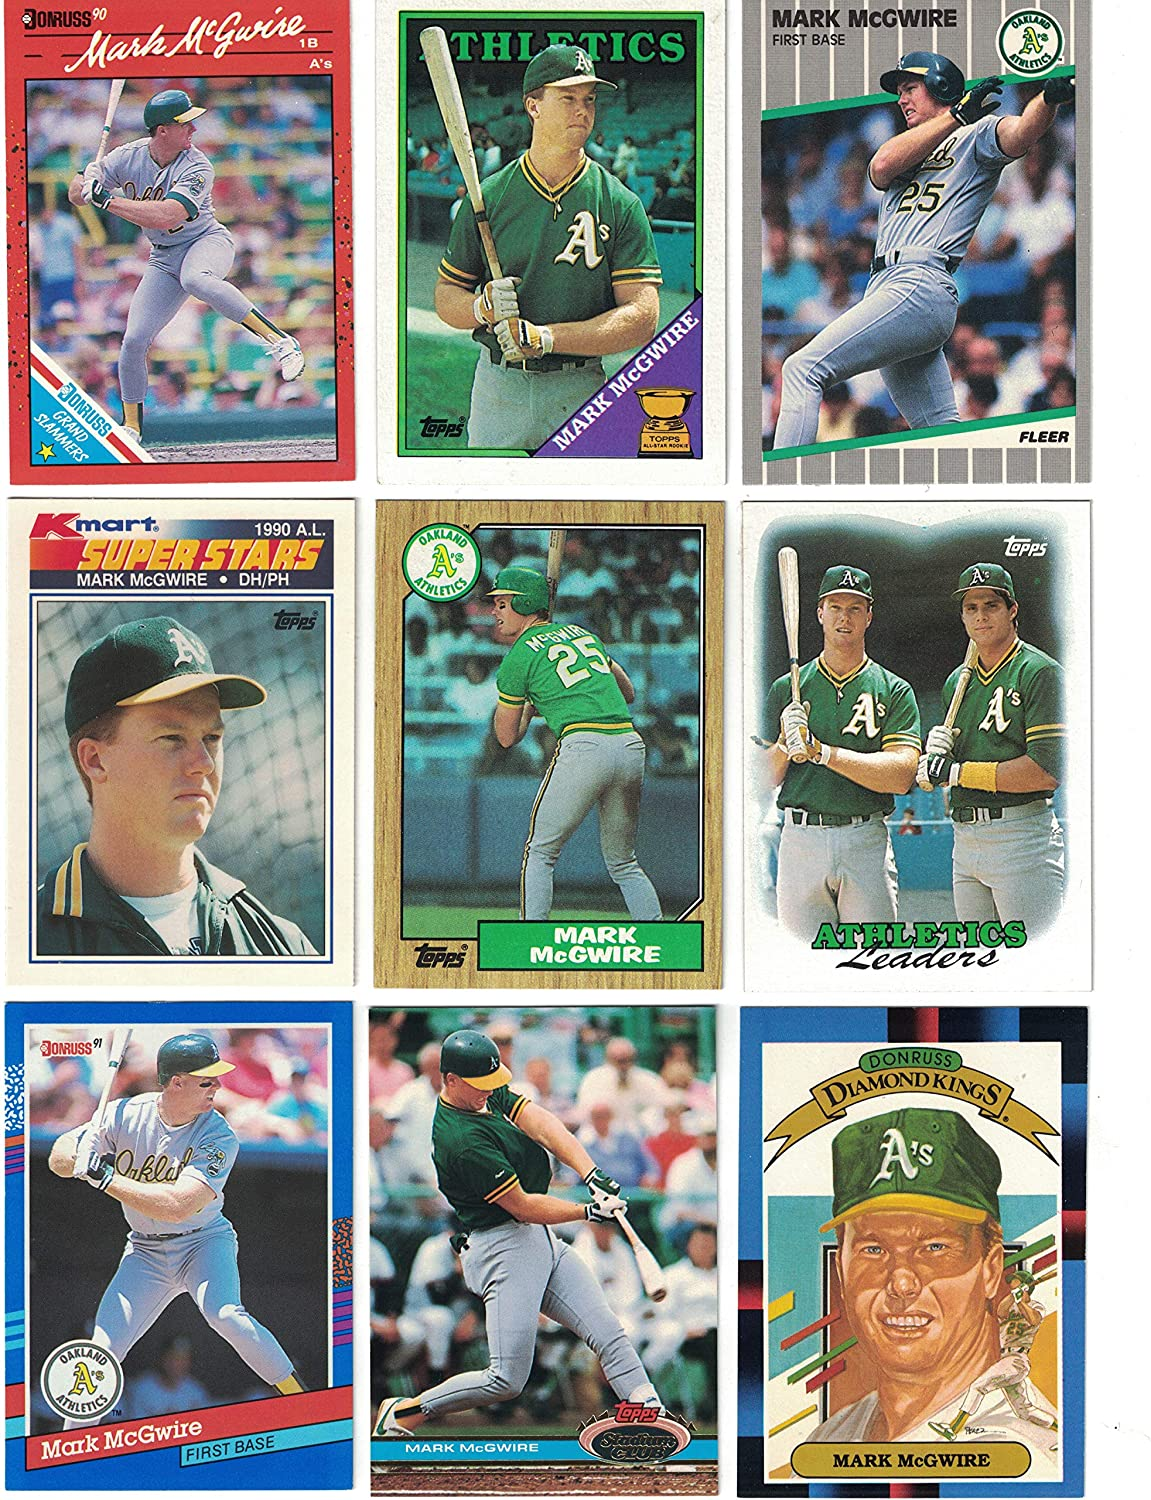 Mark Mcgwire 50 Different Baseball Cards Featuring Mark Mcgwire